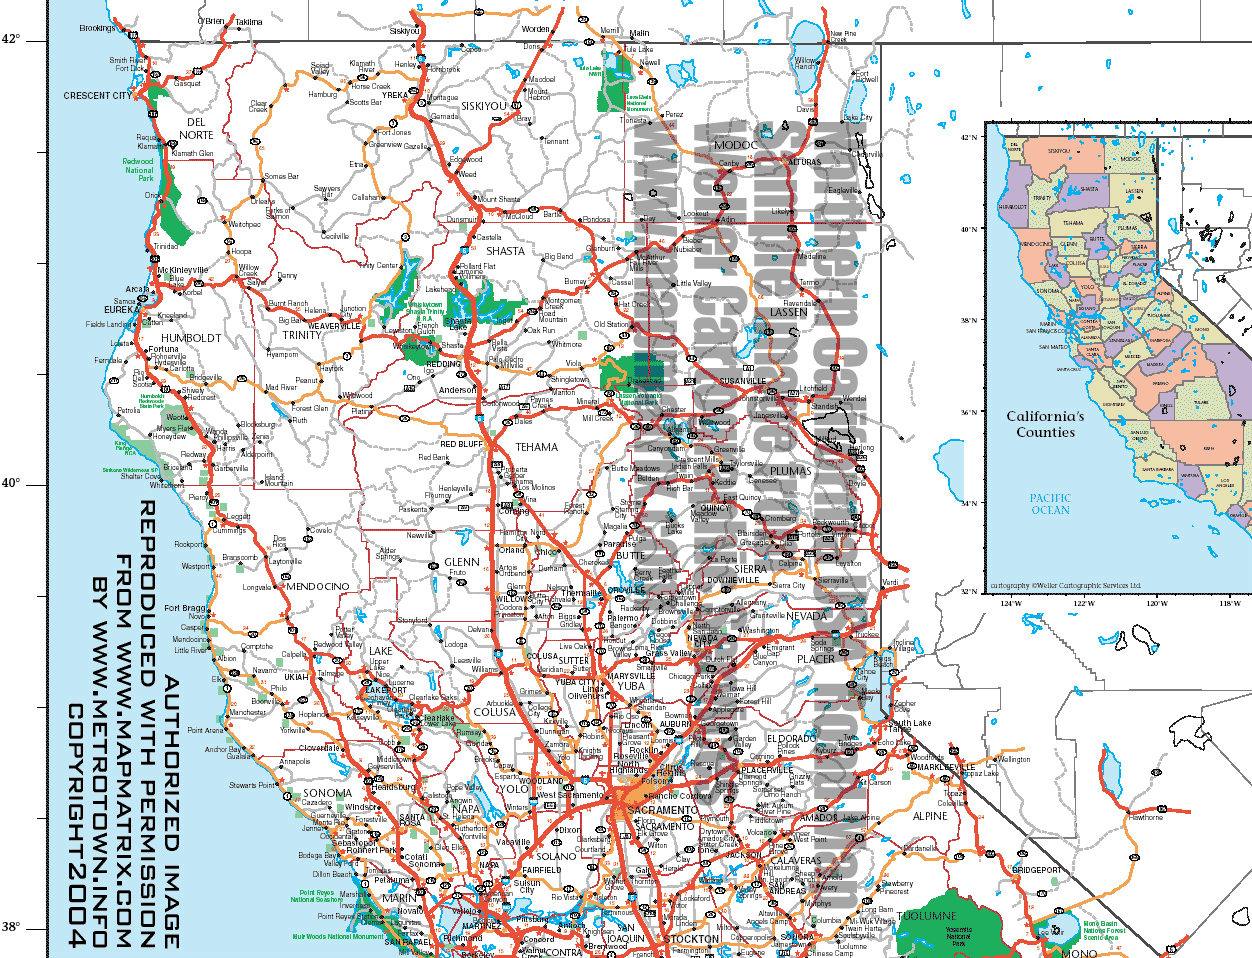 Index Map California Map Of Northern California And Oregon Coast - Road Map Of Northern California Coast